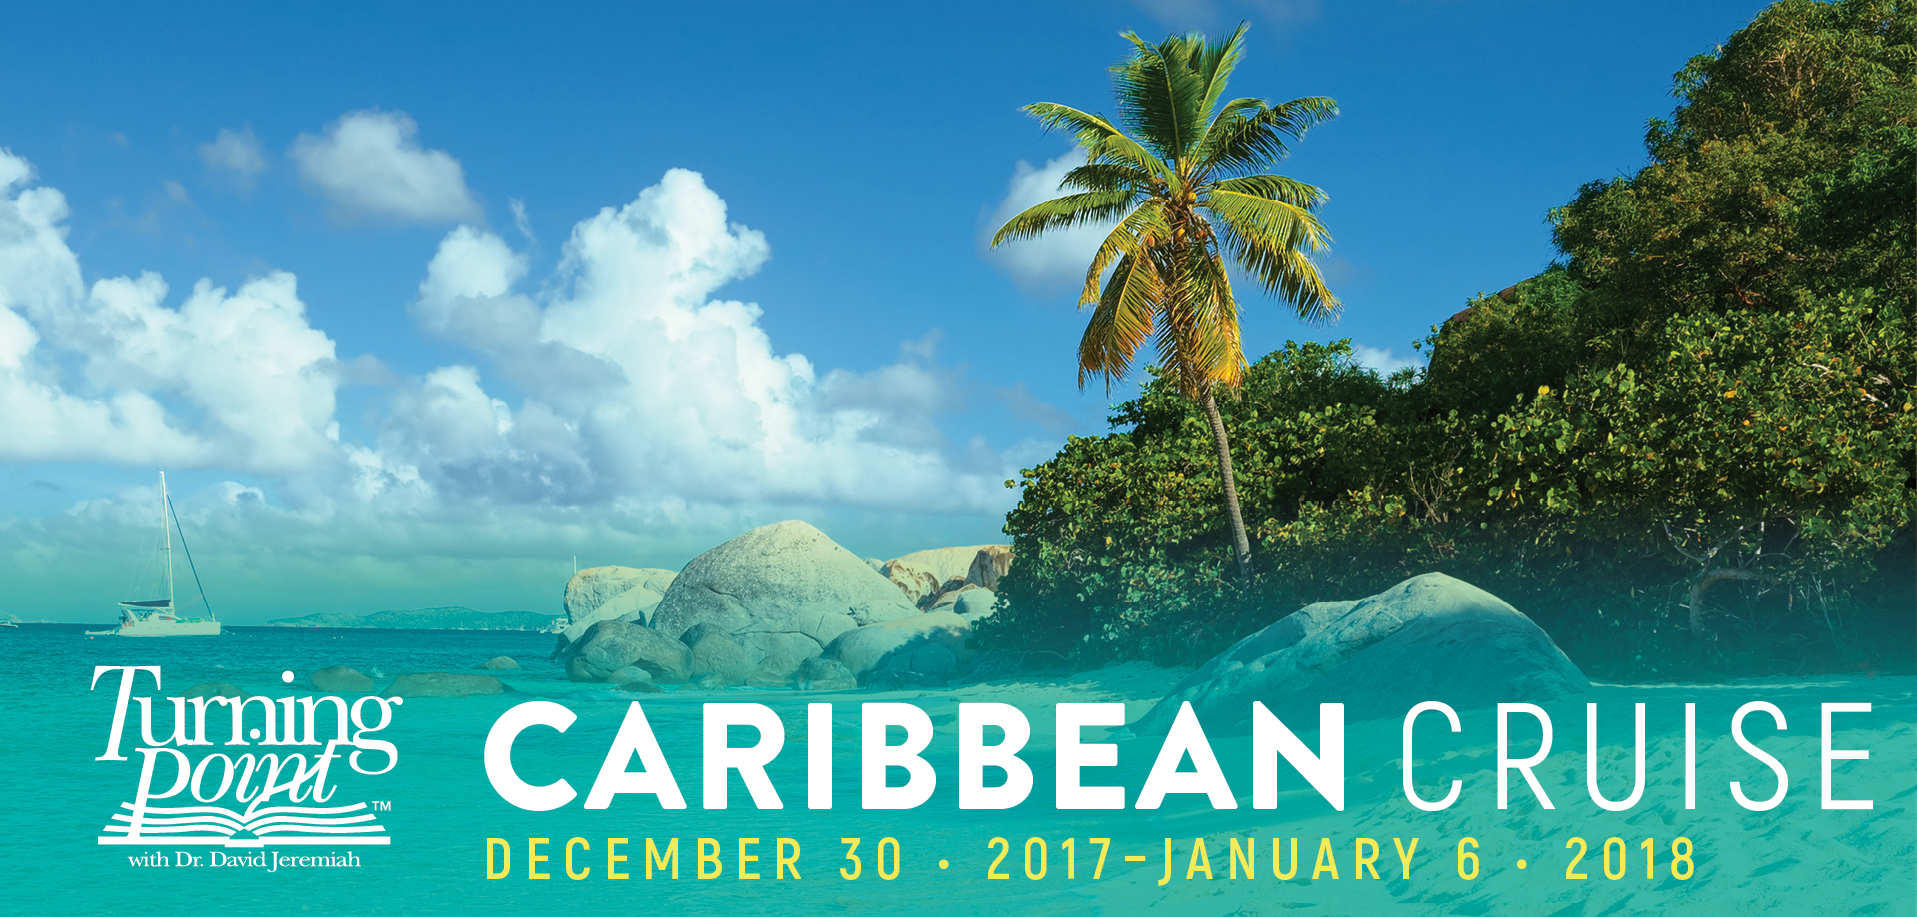 Take a Christian Cruise with Turning Point Ministries - Caribbean Cruise - December 30, 2017 - January 6, 2018